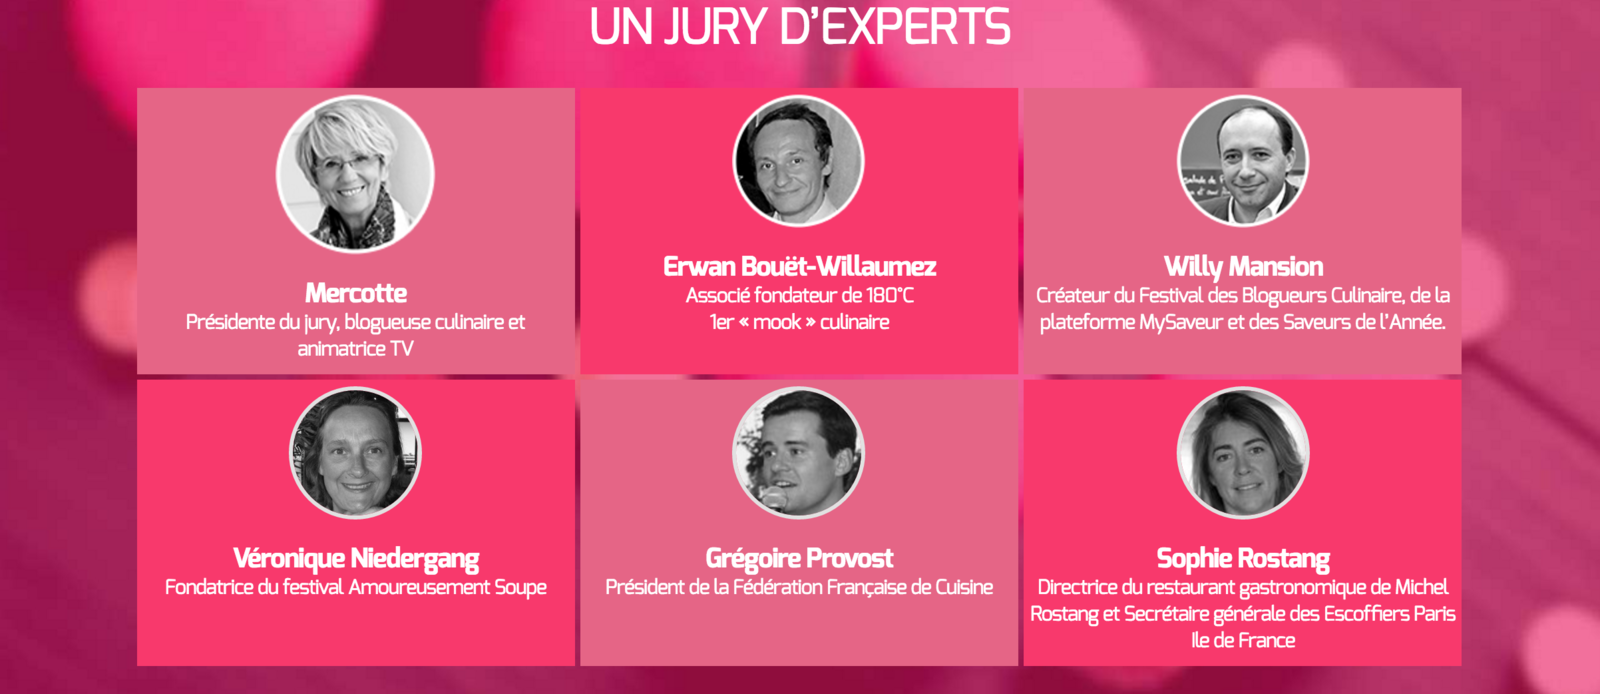 La composition du Jury d'experts